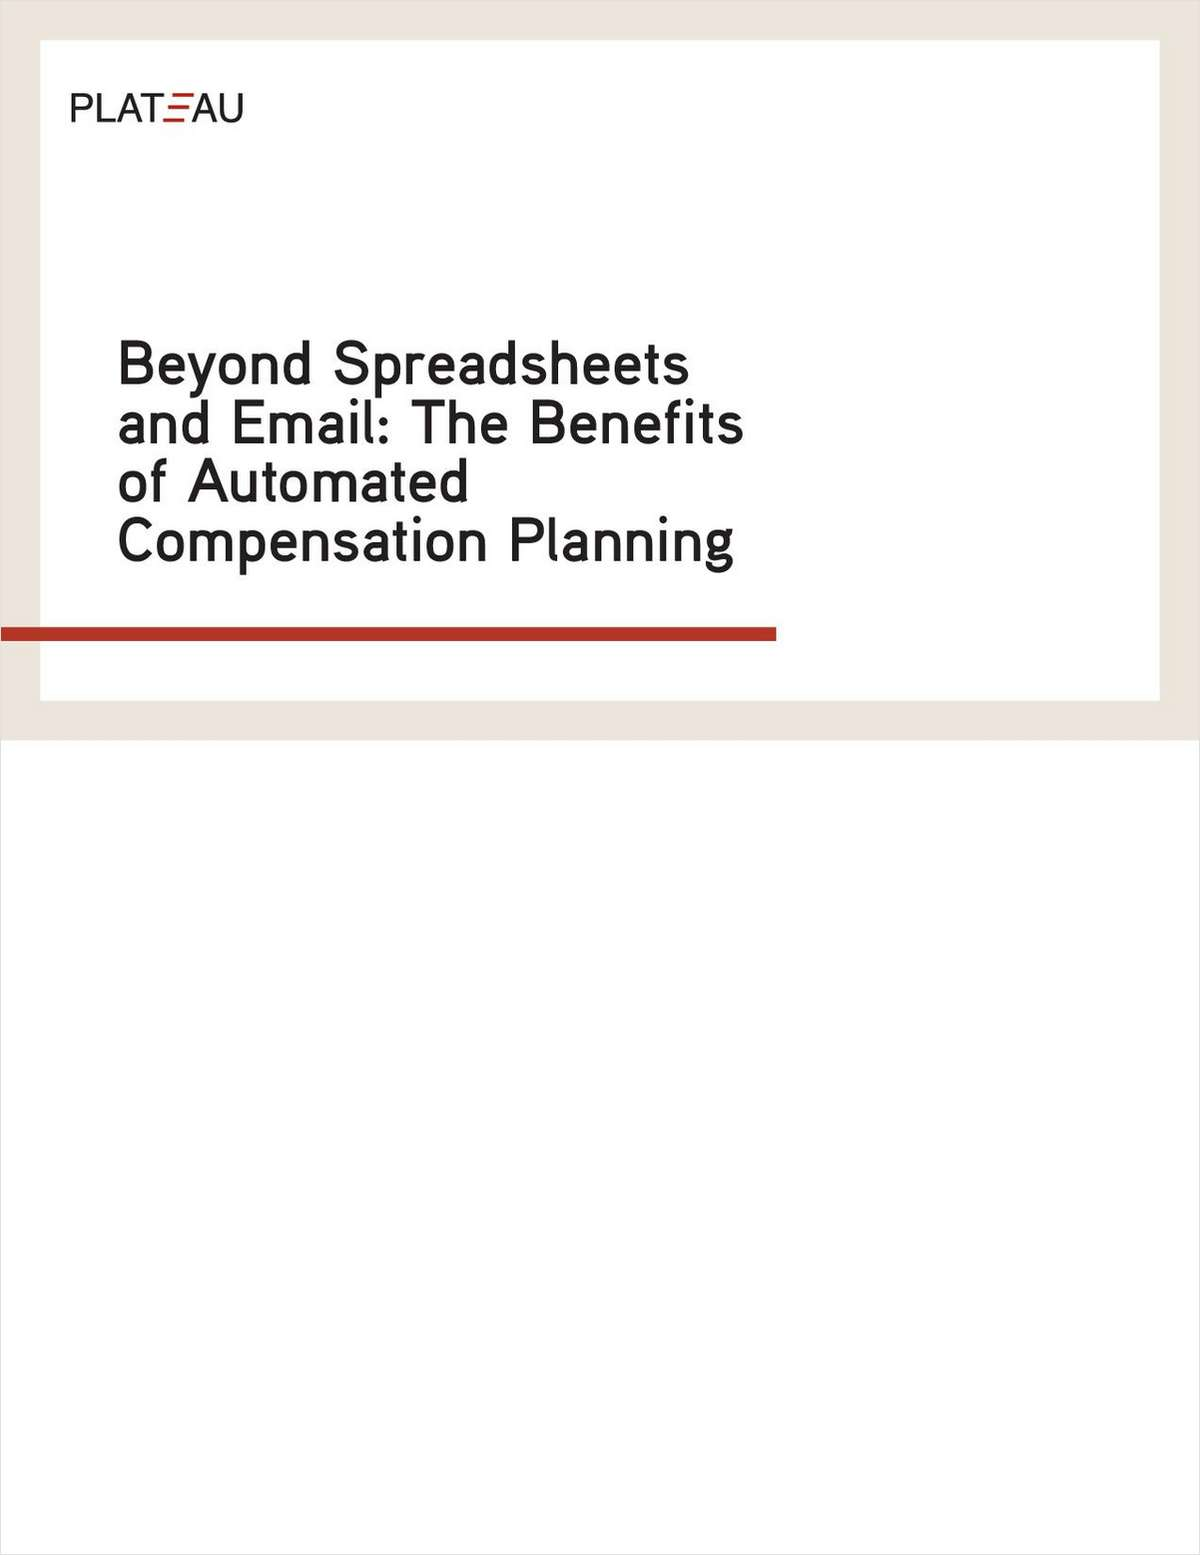 Beyond Spreadsheets and Email: The Benefits of Automated Compensation Planning